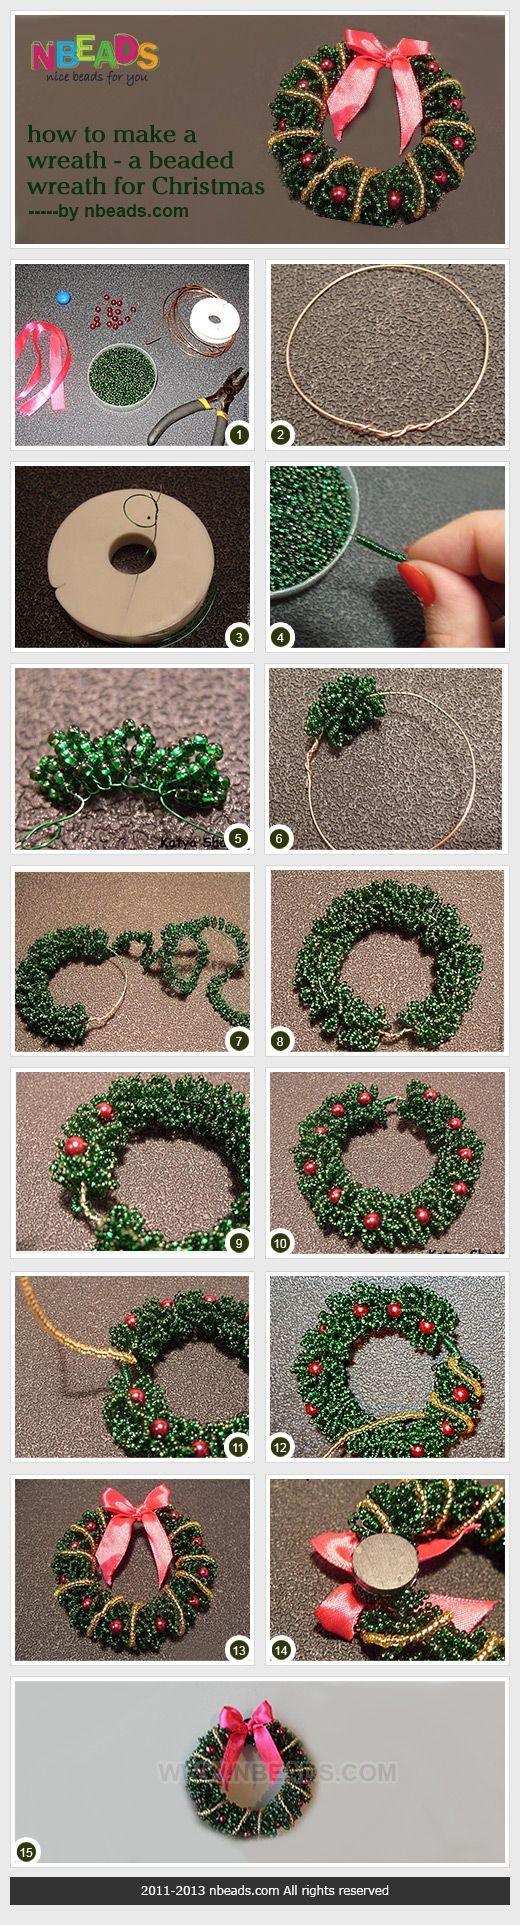 How to Make A Wreath - A Beaded Wreath for Christmas – Nbeads